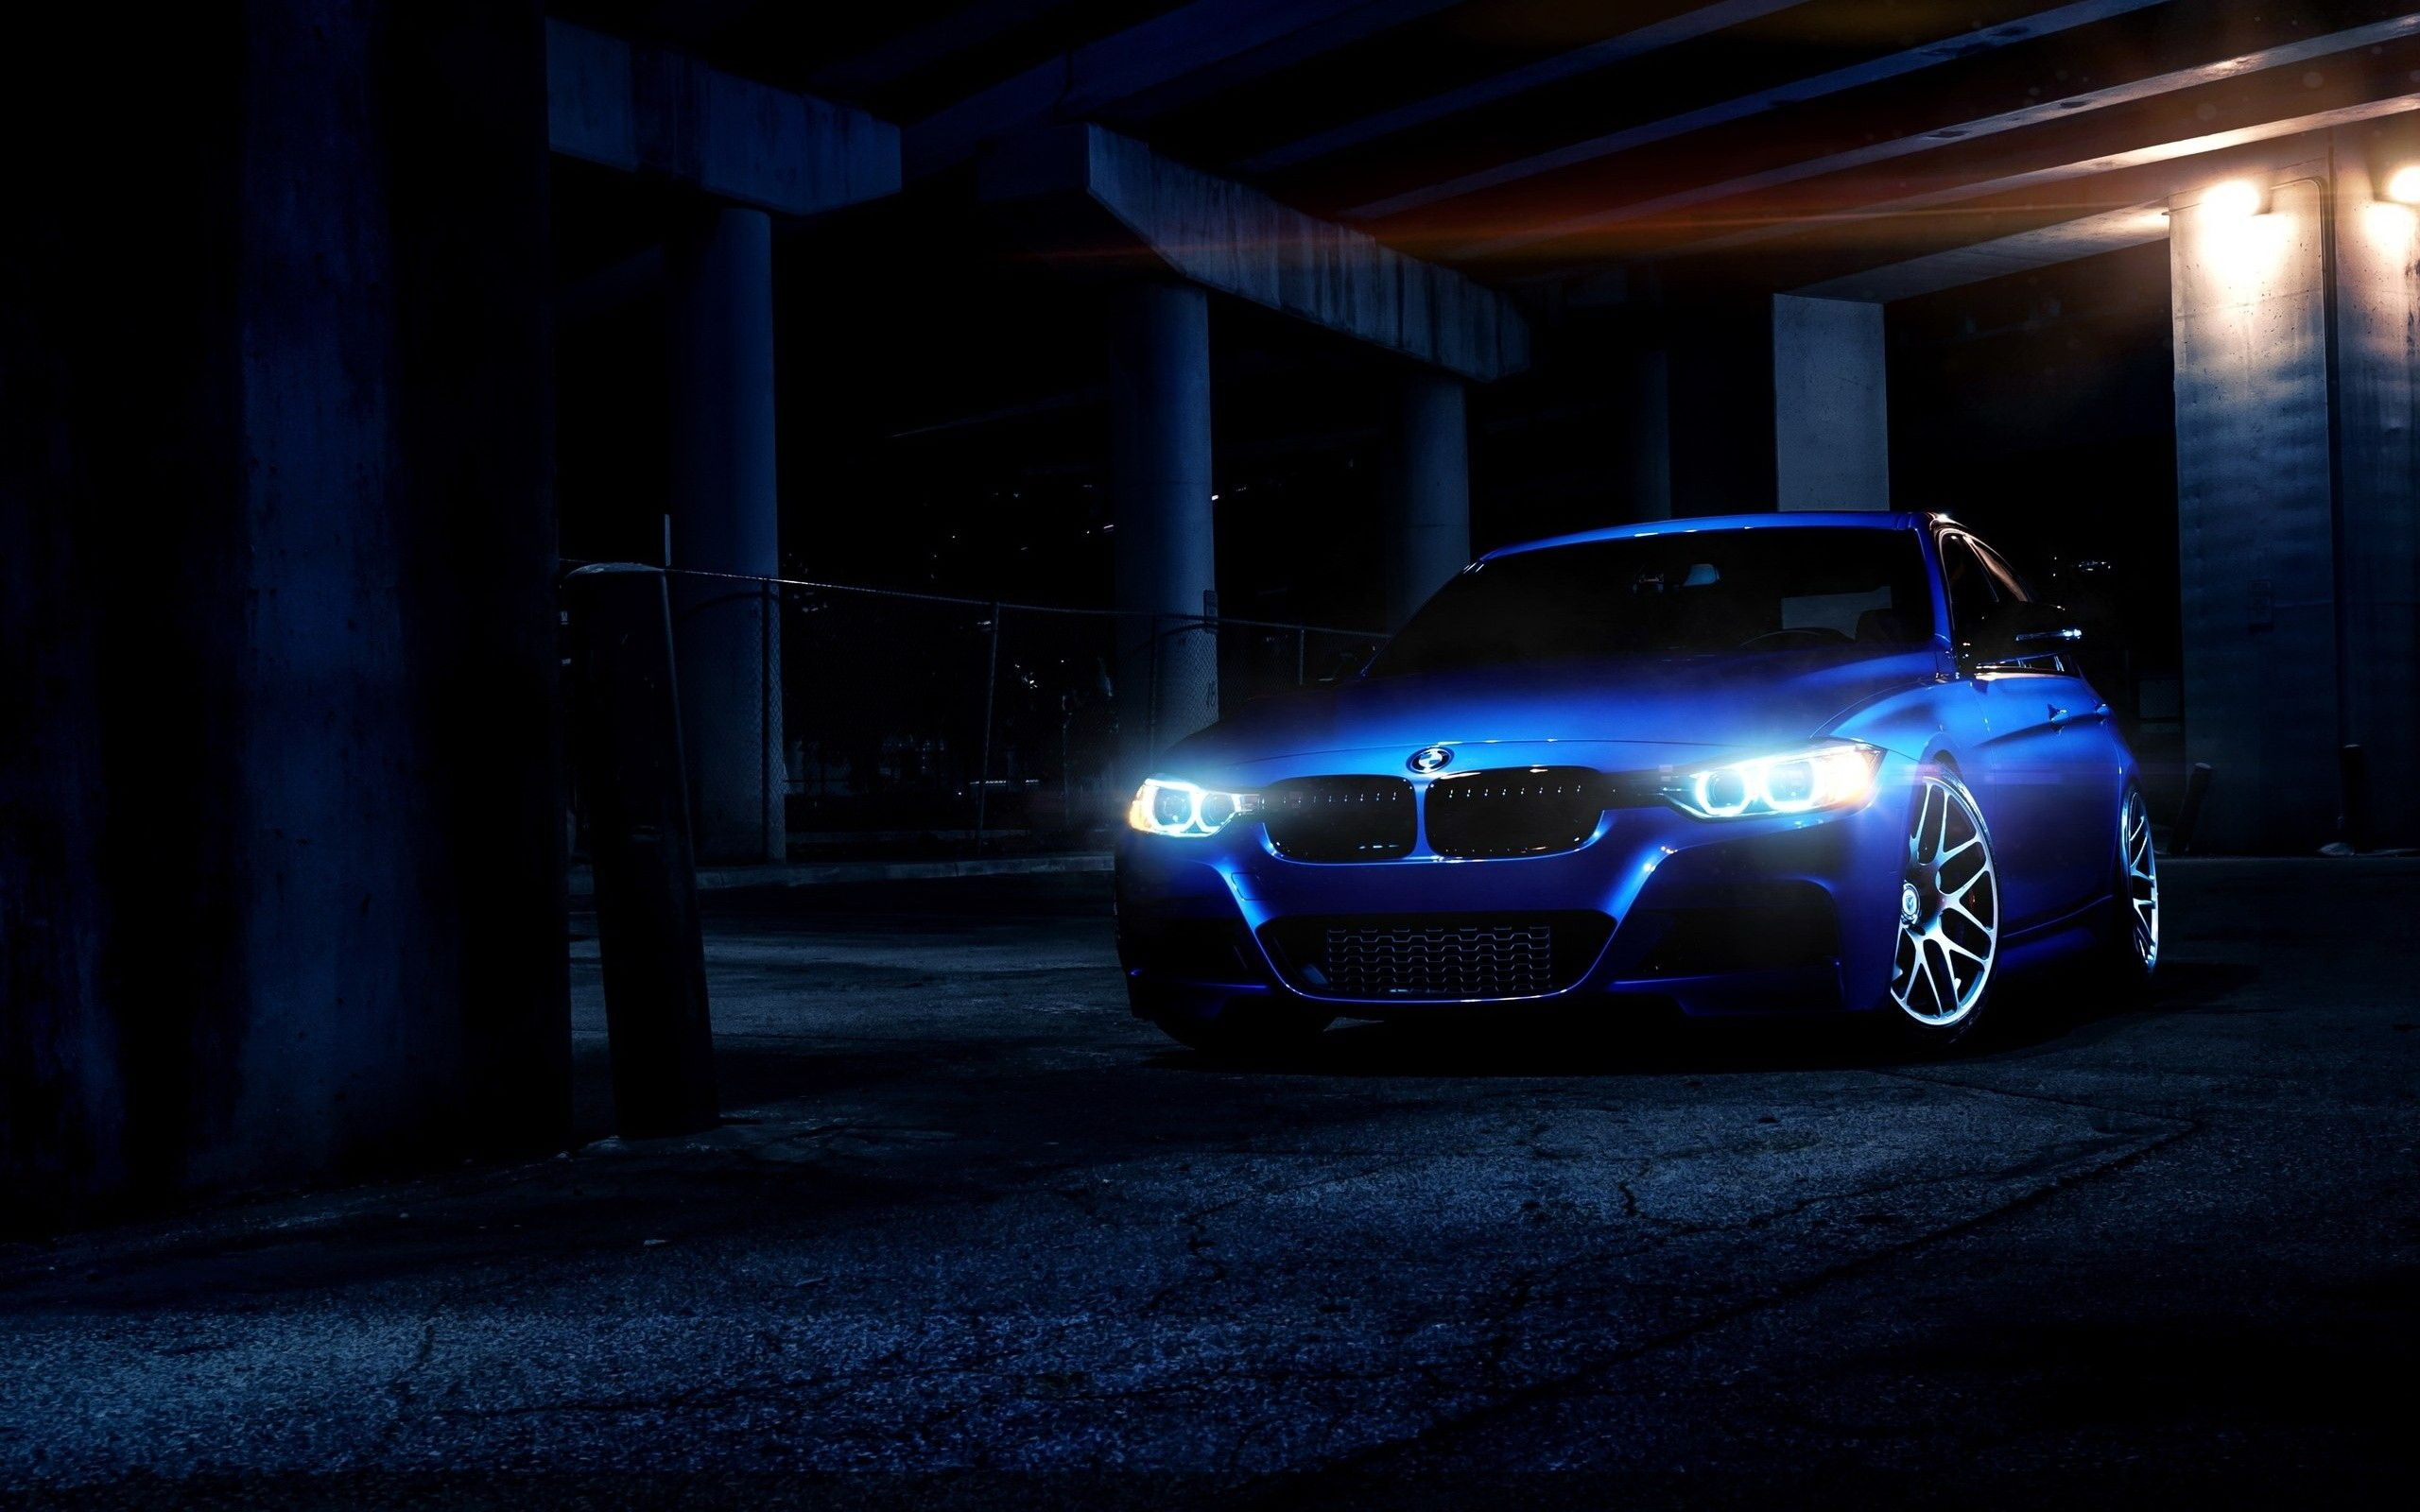 BMW F30 Wallpapers   Top BMW F30 Backgrounds   WallpaperAccess 2560x1600